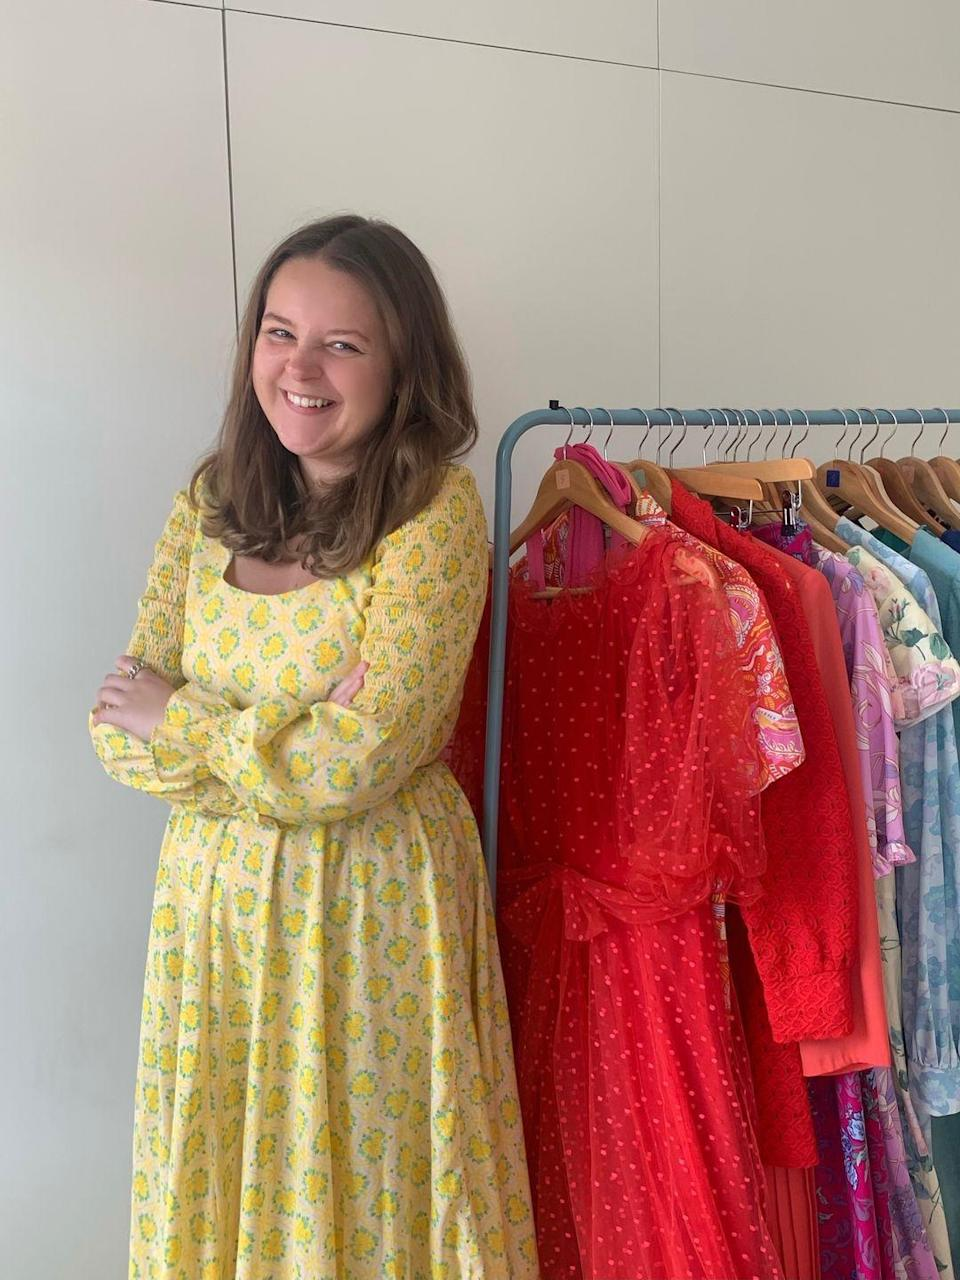 """<p>'I am not led by one particular trend or era and always try to stock a wider range of sizes,' Saluto London founder Hannah Stacpoole told ELLE UK. </p><p>'You can find anything from a full-length floral number - which is as easily teamed with a pair of 1970s platforms as is with a pair of trainers - to antique embroidered blouses and outrageous feathered mini-dresses.'</p><p><a class=""""link rapid-noclick-resp"""" href=""""https://www.salutolondon.com/"""" rel=""""nofollow noopener"""" target=""""_blank"""" data-ylk=""""slk:SHOP SALUTO LONDON NOW"""">SHOP SALUTO LONDON NOW</a></p>"""